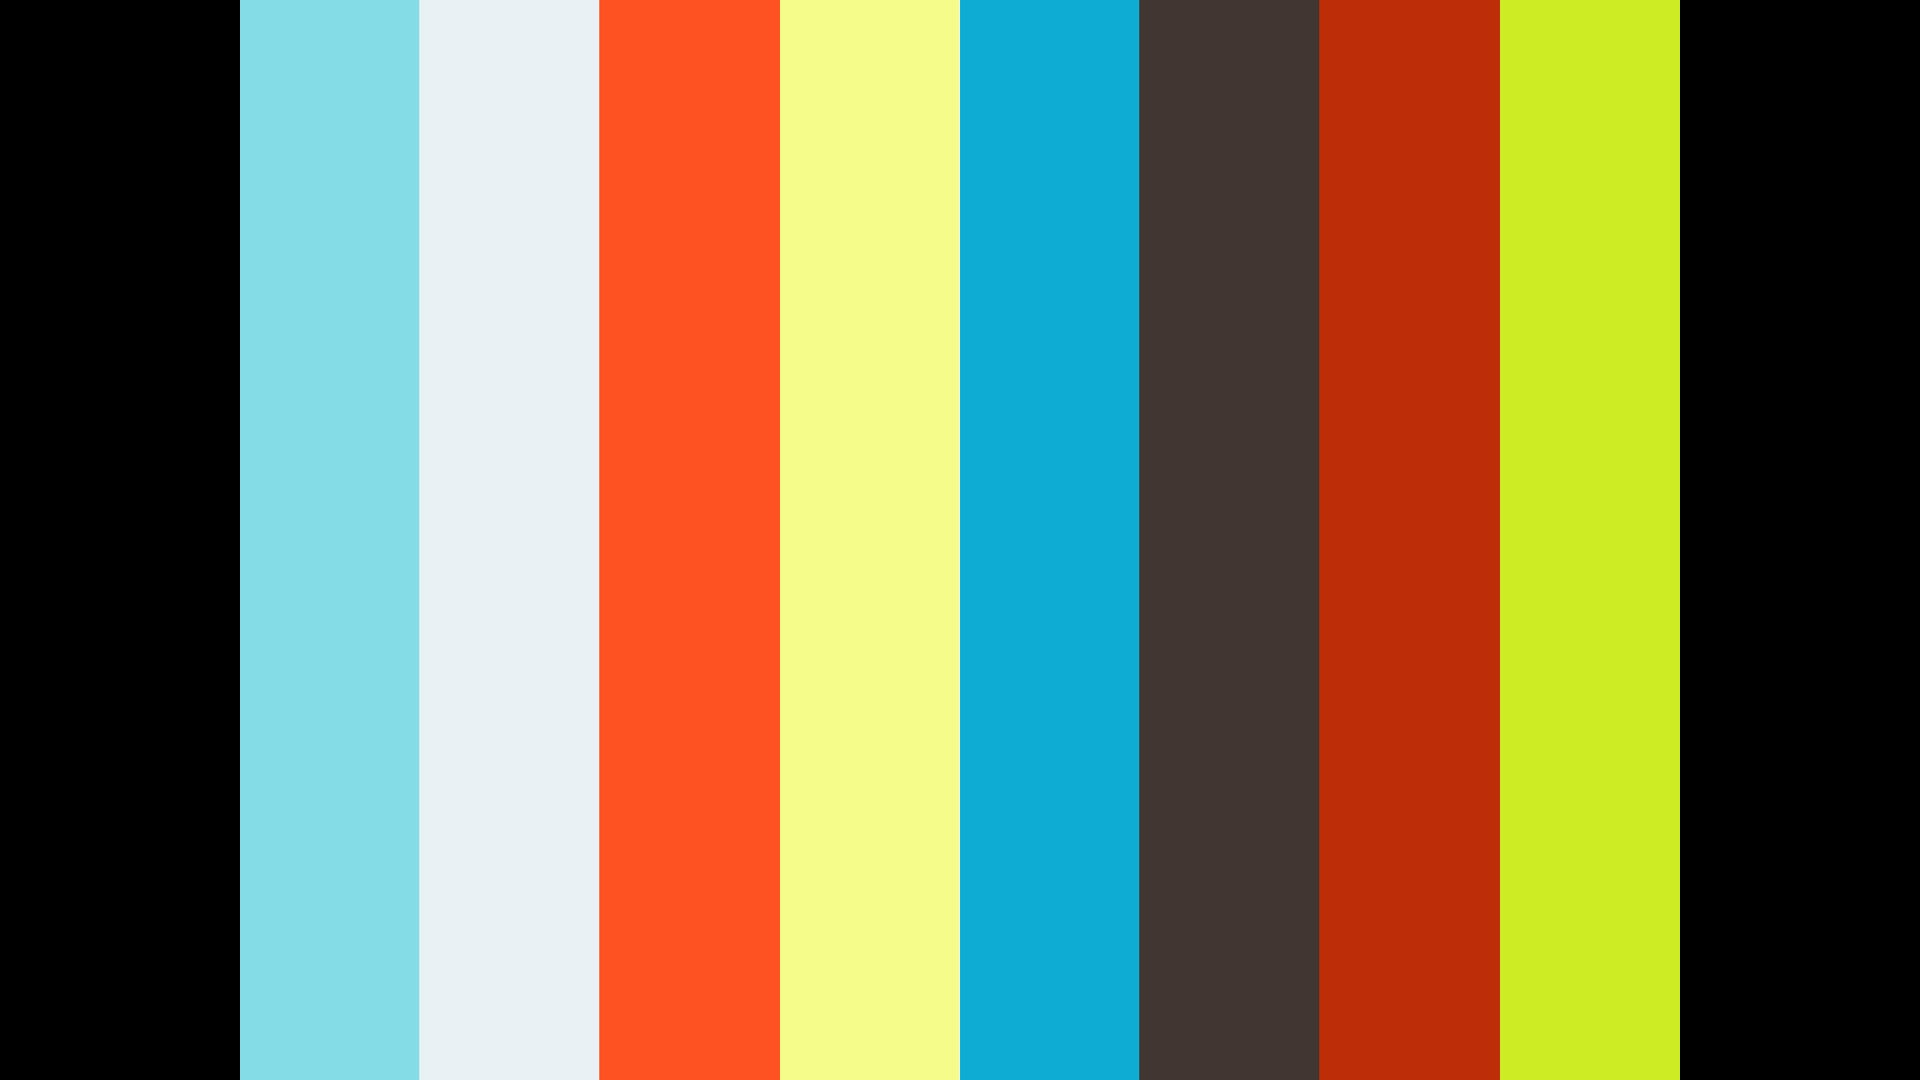 Dzongsar Khyentse Rinpoche Speaking about Gene Smith《憶念琴恩·史密斯》宗薩欽哲仁波切